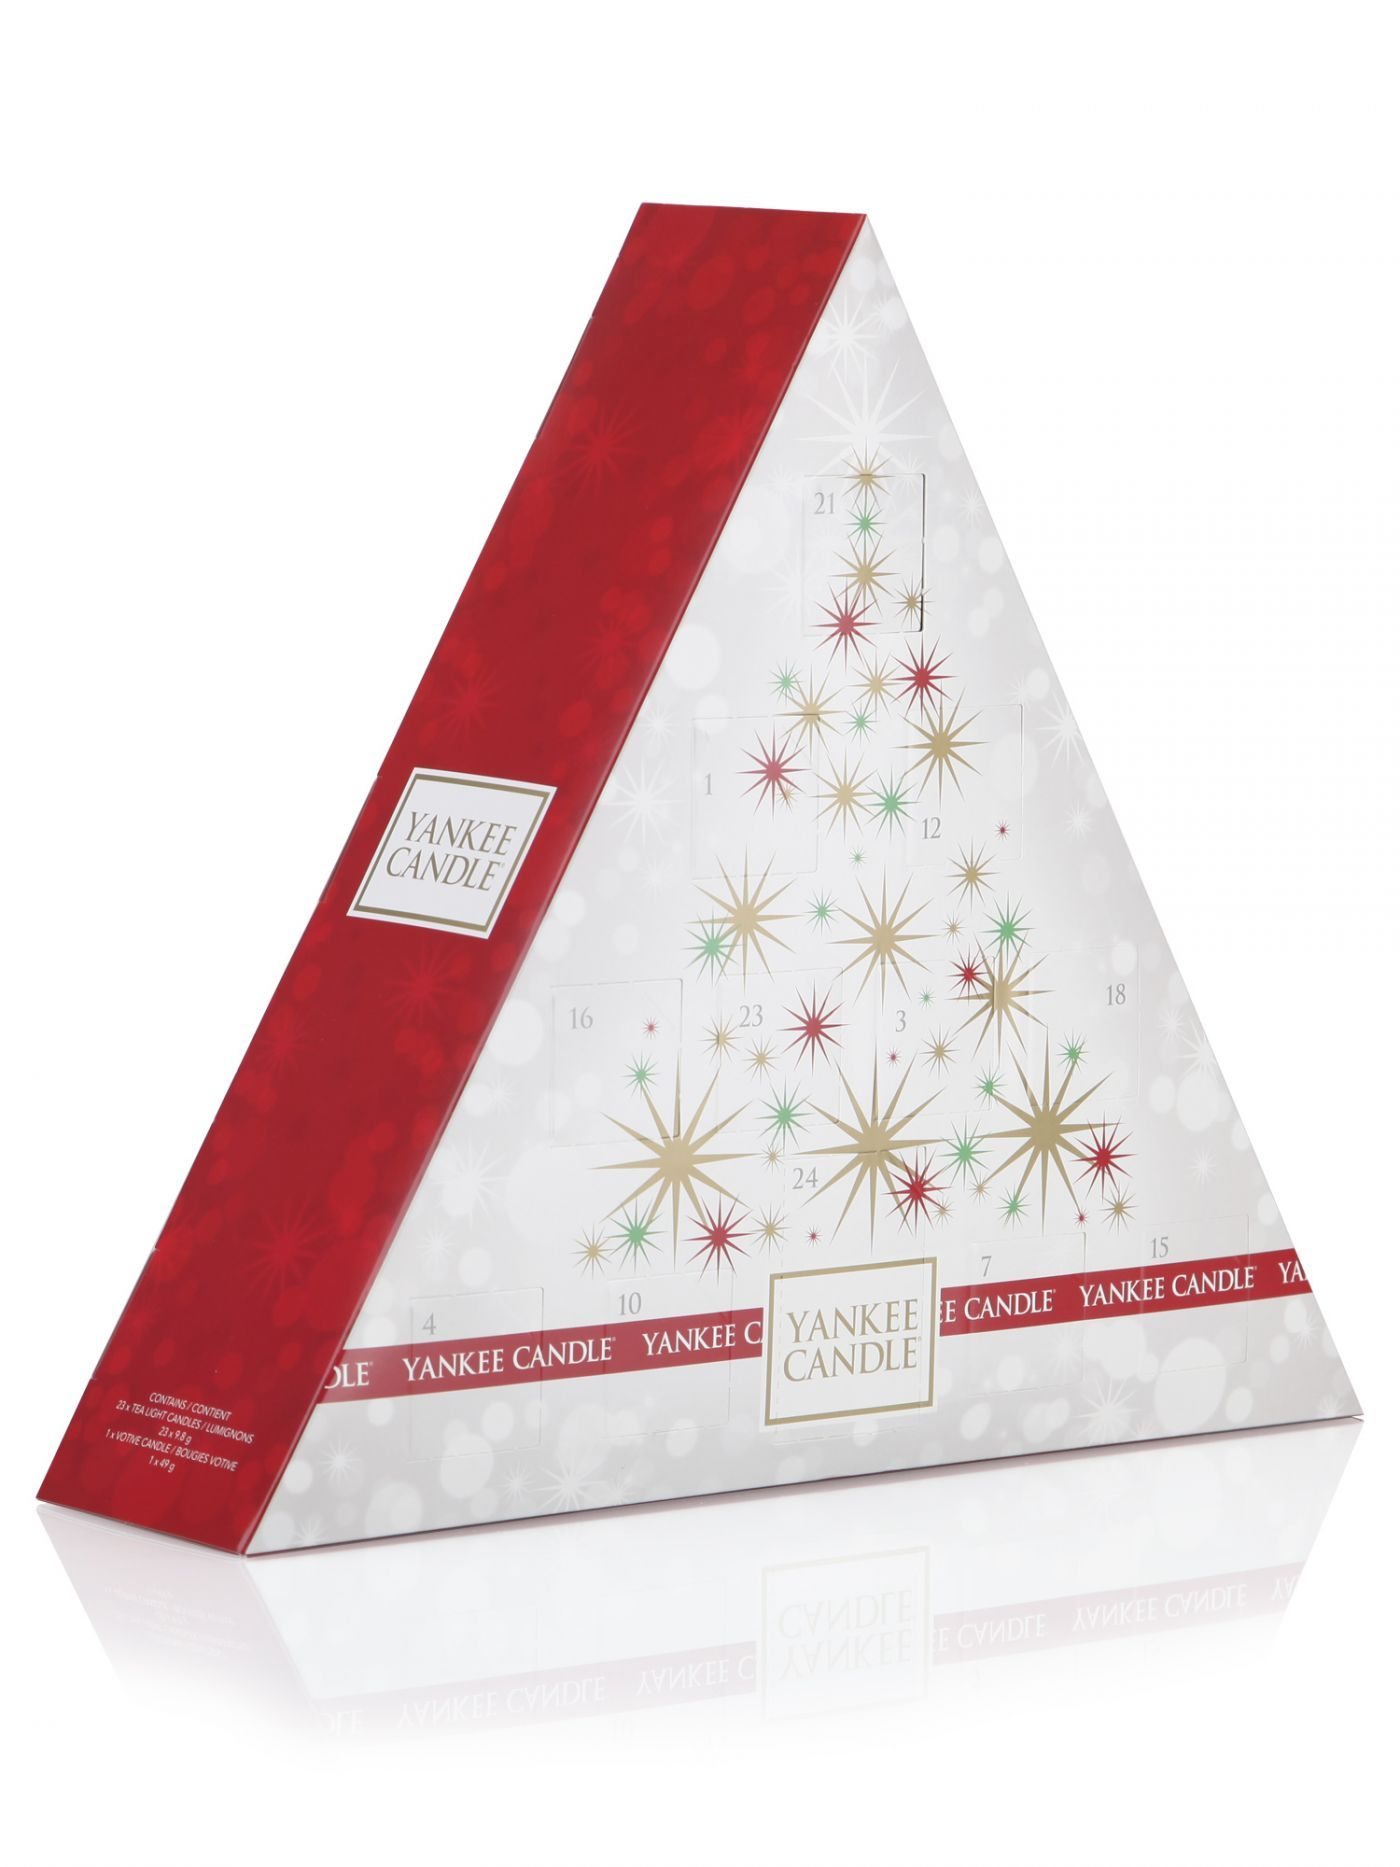 Yankee Candle Advent Calendar Gift Set